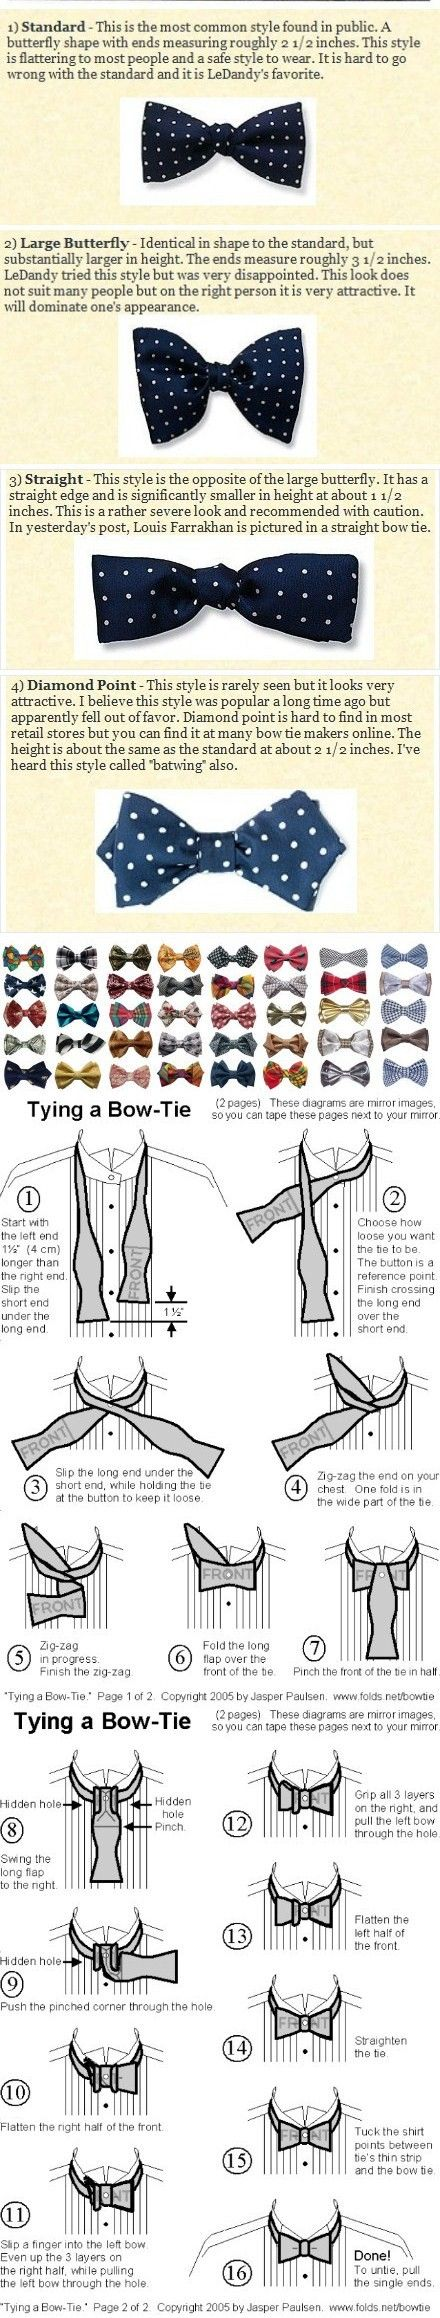 78 Best Groom Groomsmen Images On Pinterest How To Tie A The Doublewrap Double Windsor Knot Ties